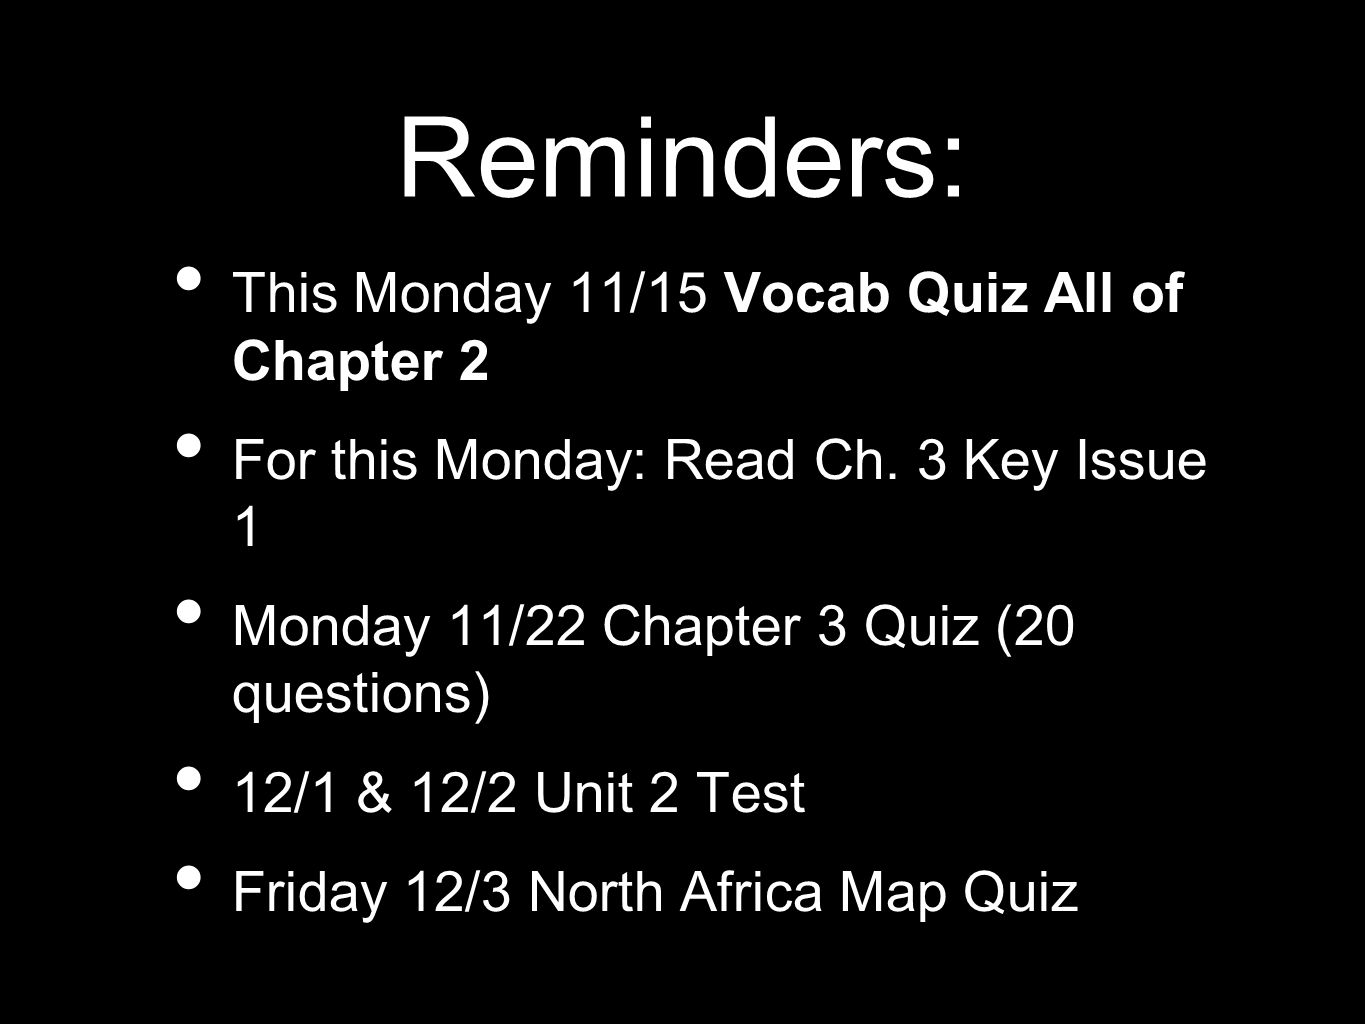 Reminders: This Monday 11/15 Vocab Quiz All of Chapter 2